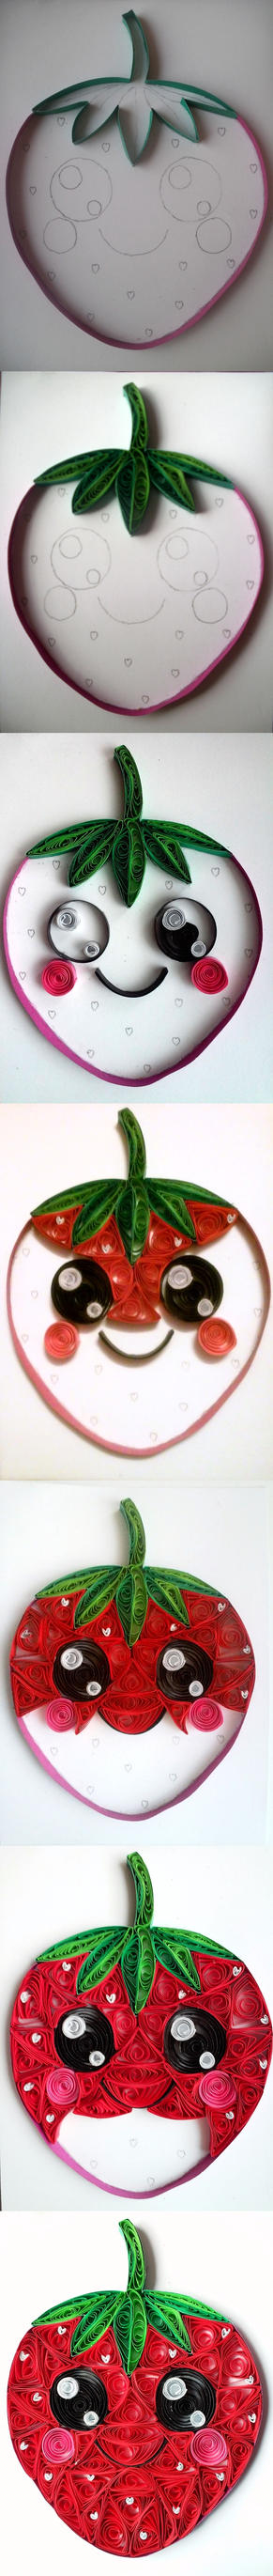 Quilling - Strawberry (step by step) by Sszymon14